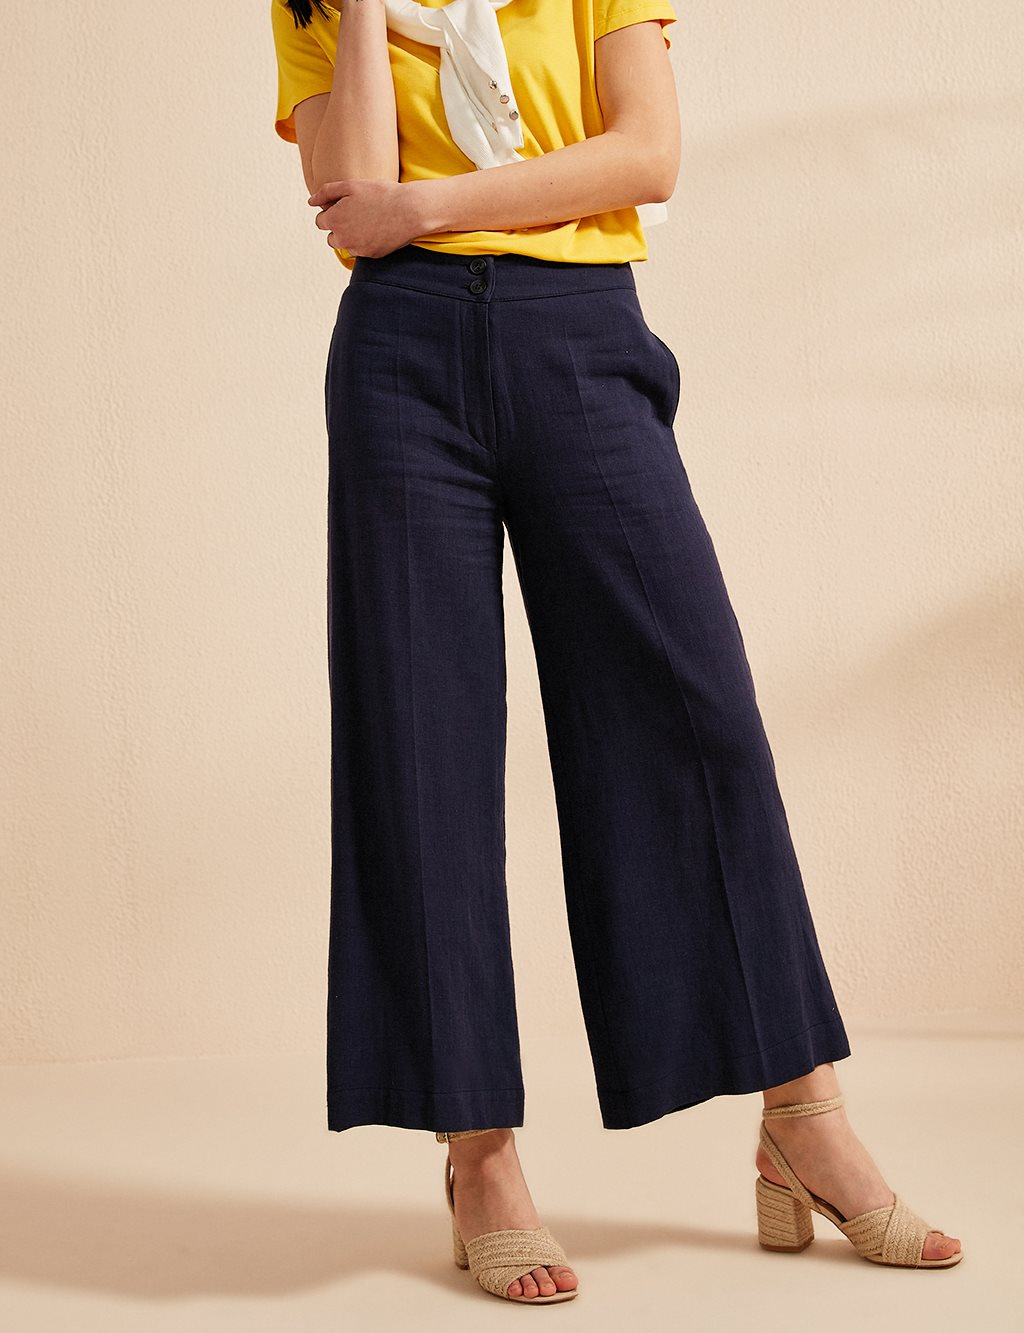 Wide Leg Pants B20 19011 Navy